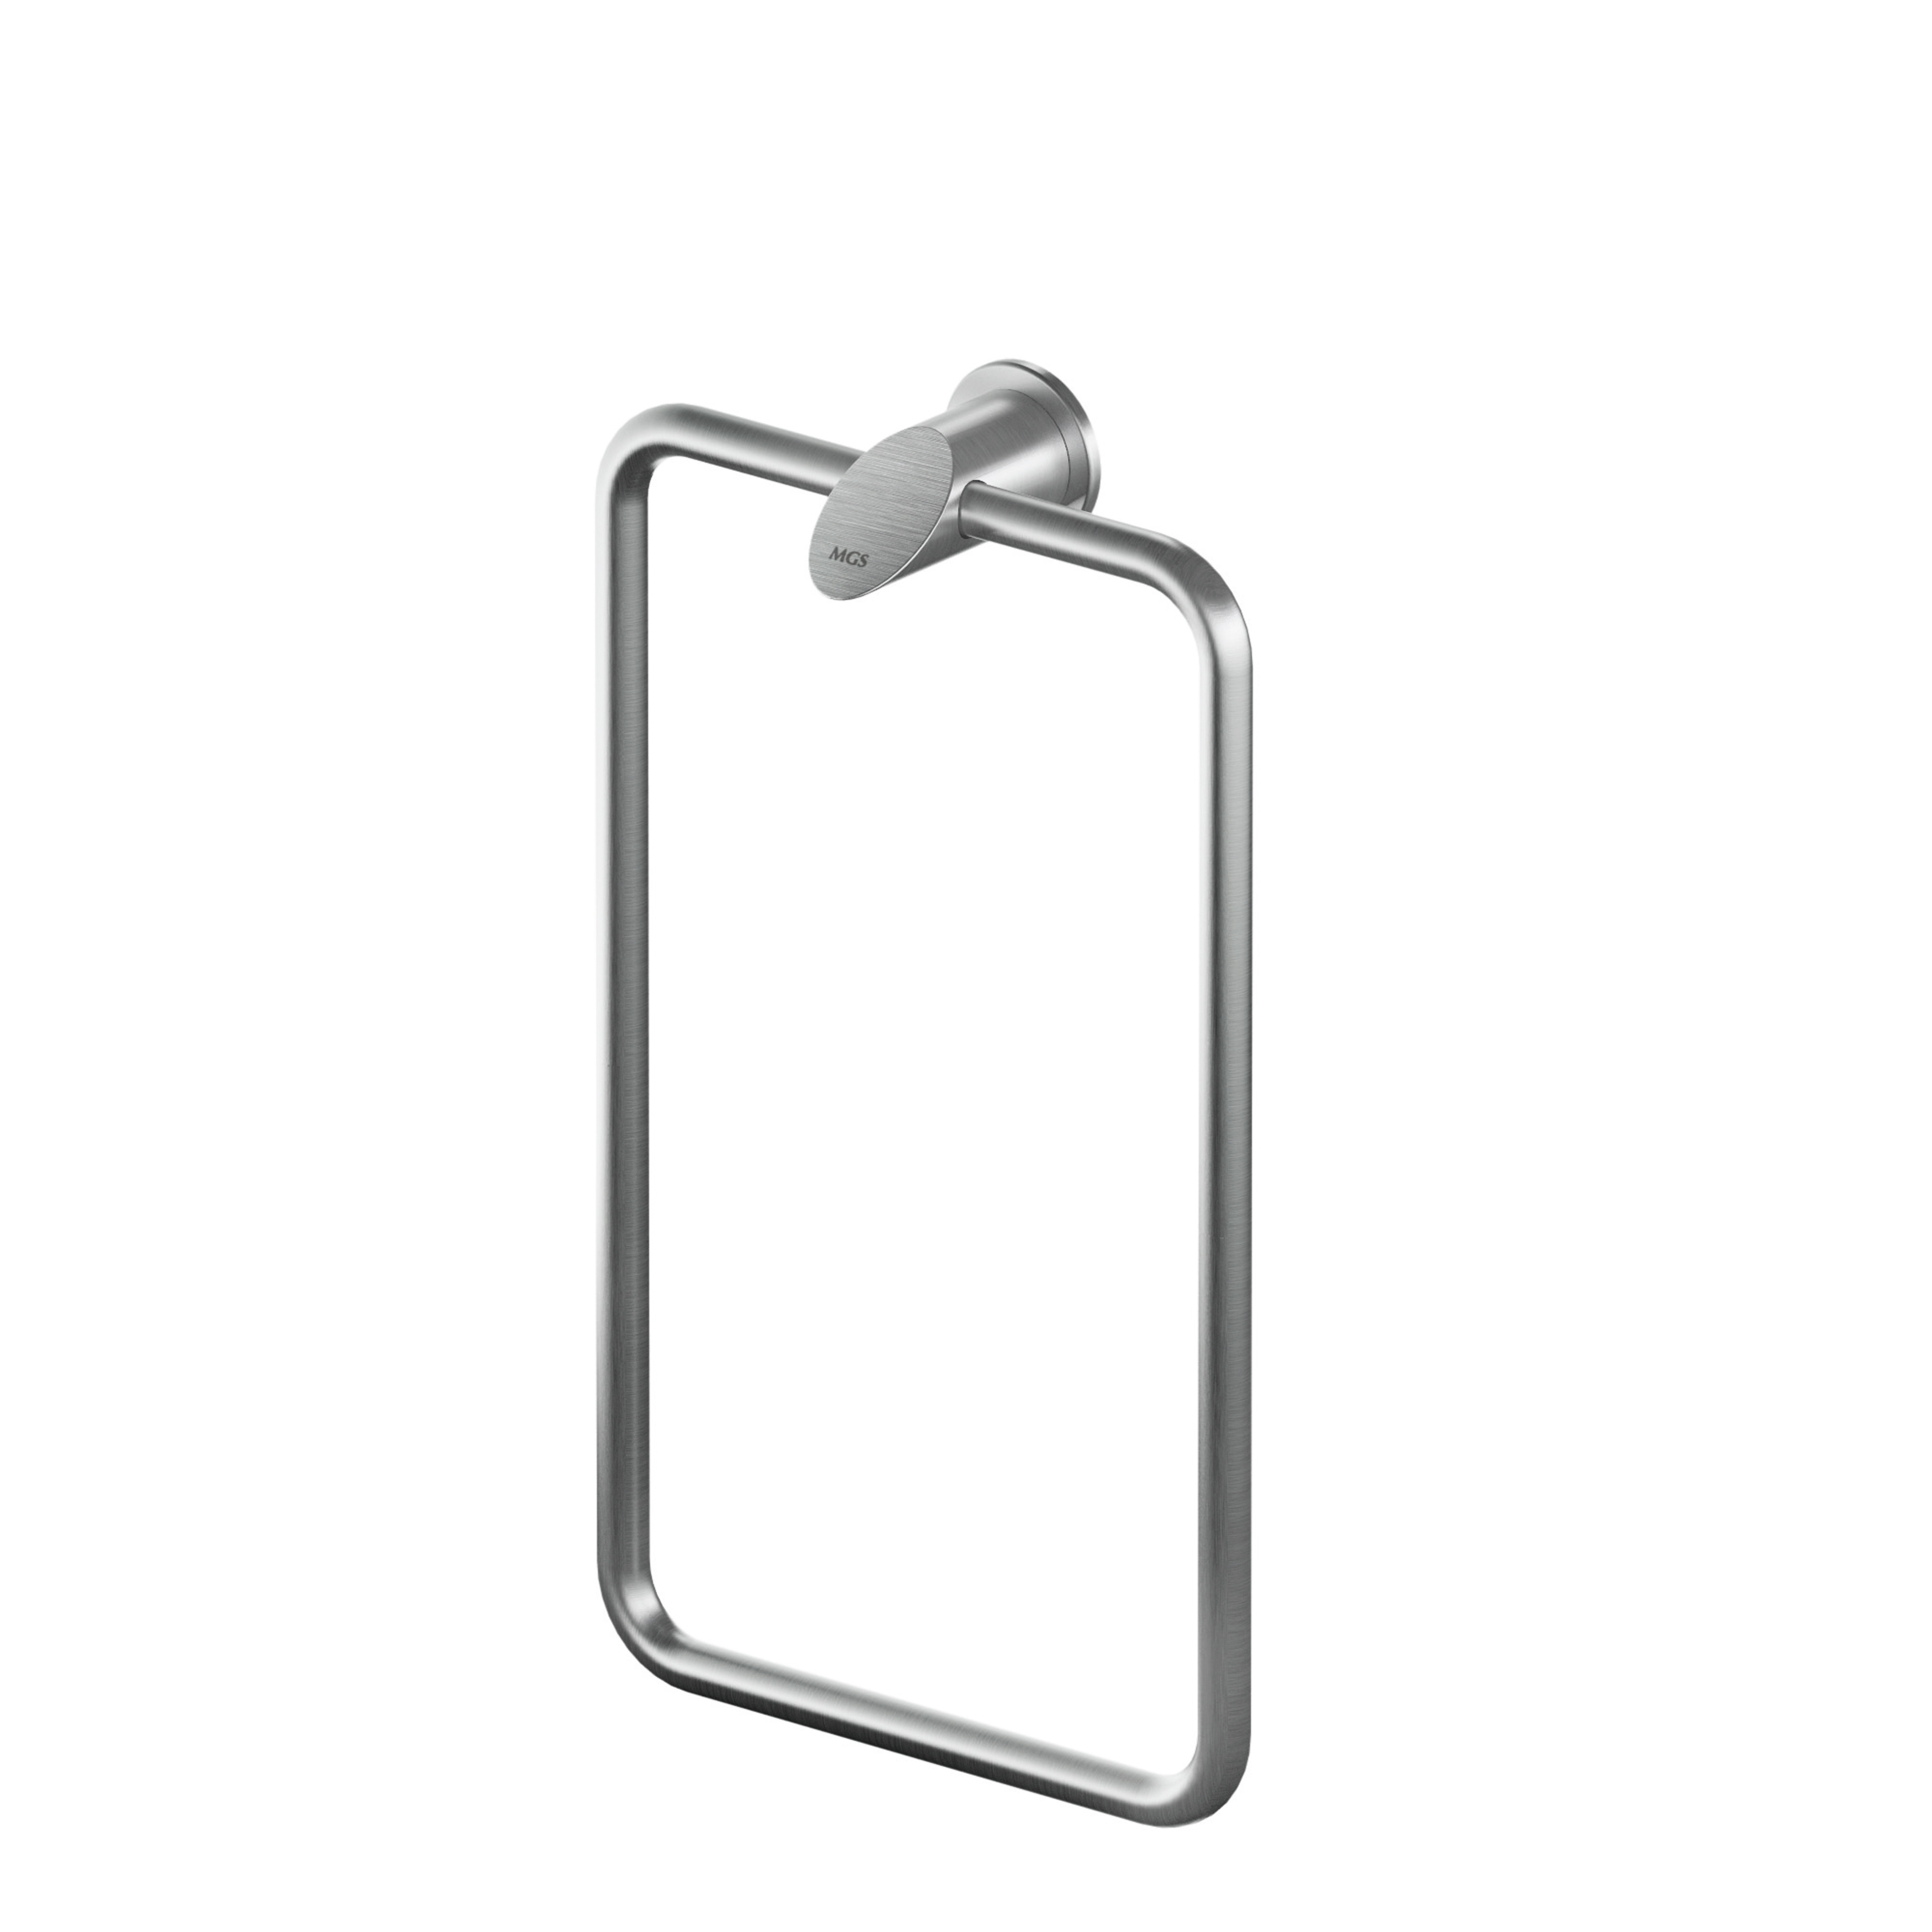 MGS AC933 Rectangular Towel Holder - matte stainless